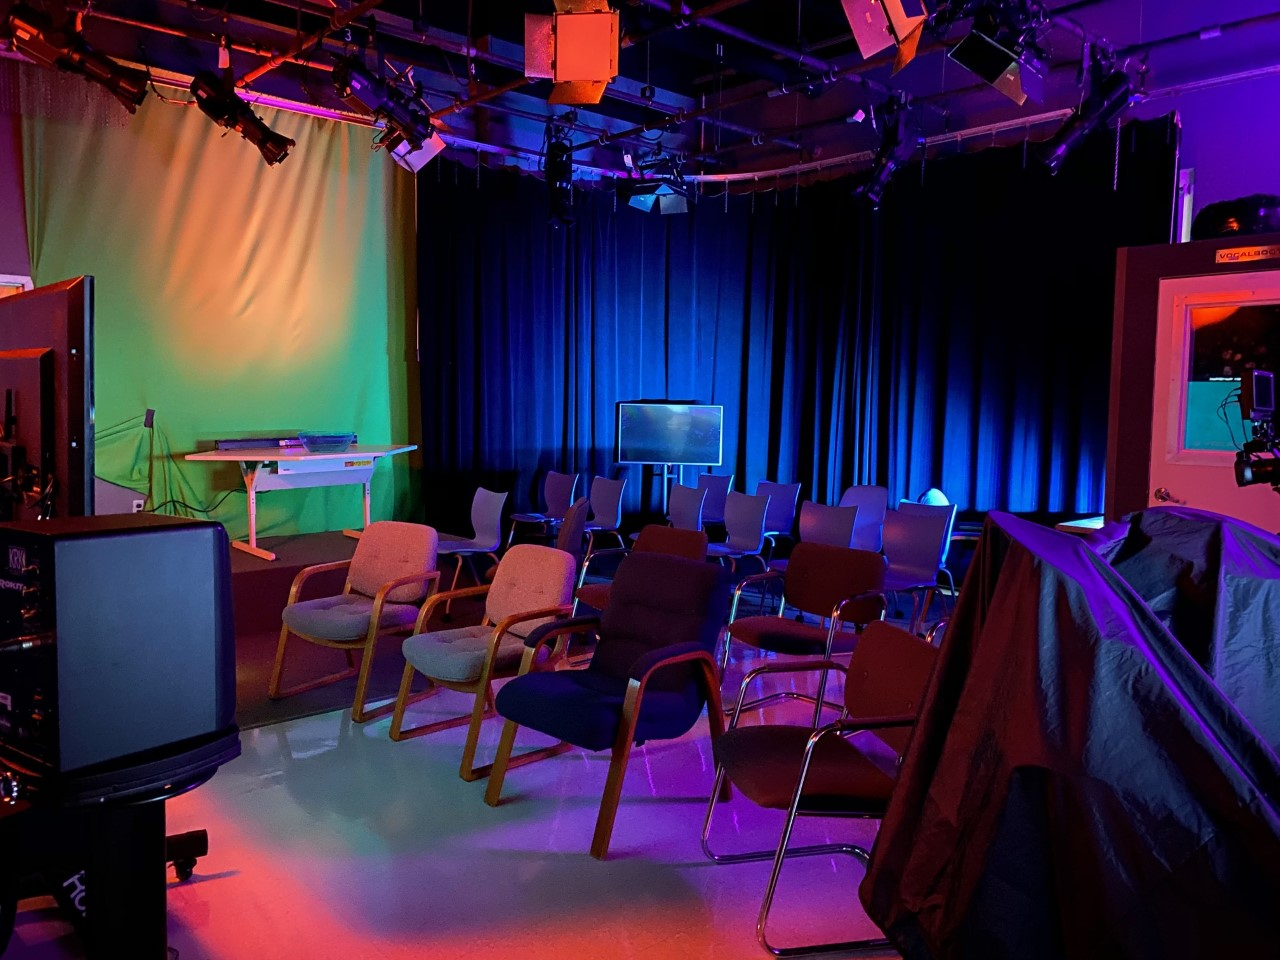 Lighting effects in a classroom